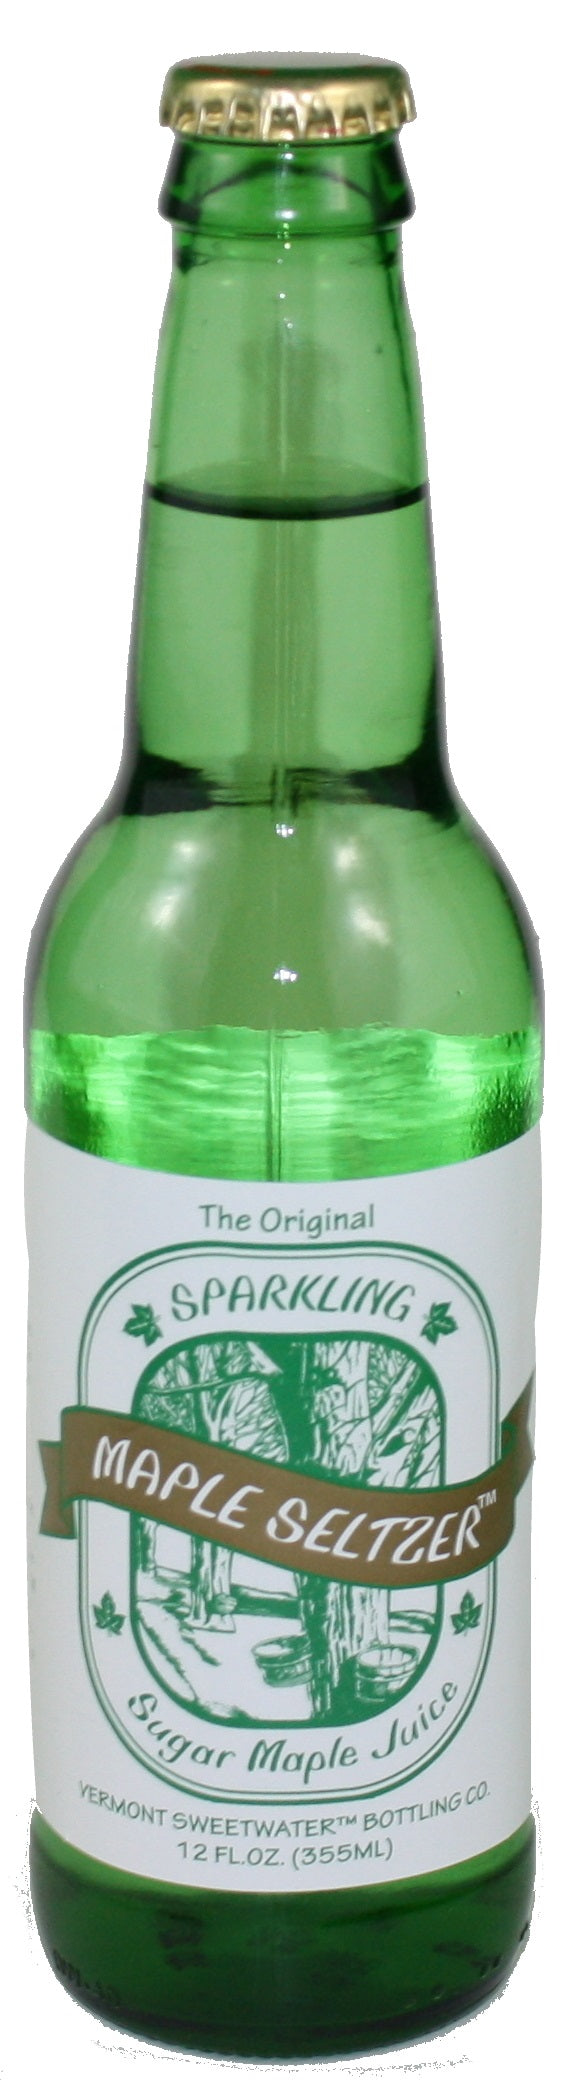 Vermont Sweetwater All Natural Glass Bottle Soda (Sparkling Maple Seltzer)